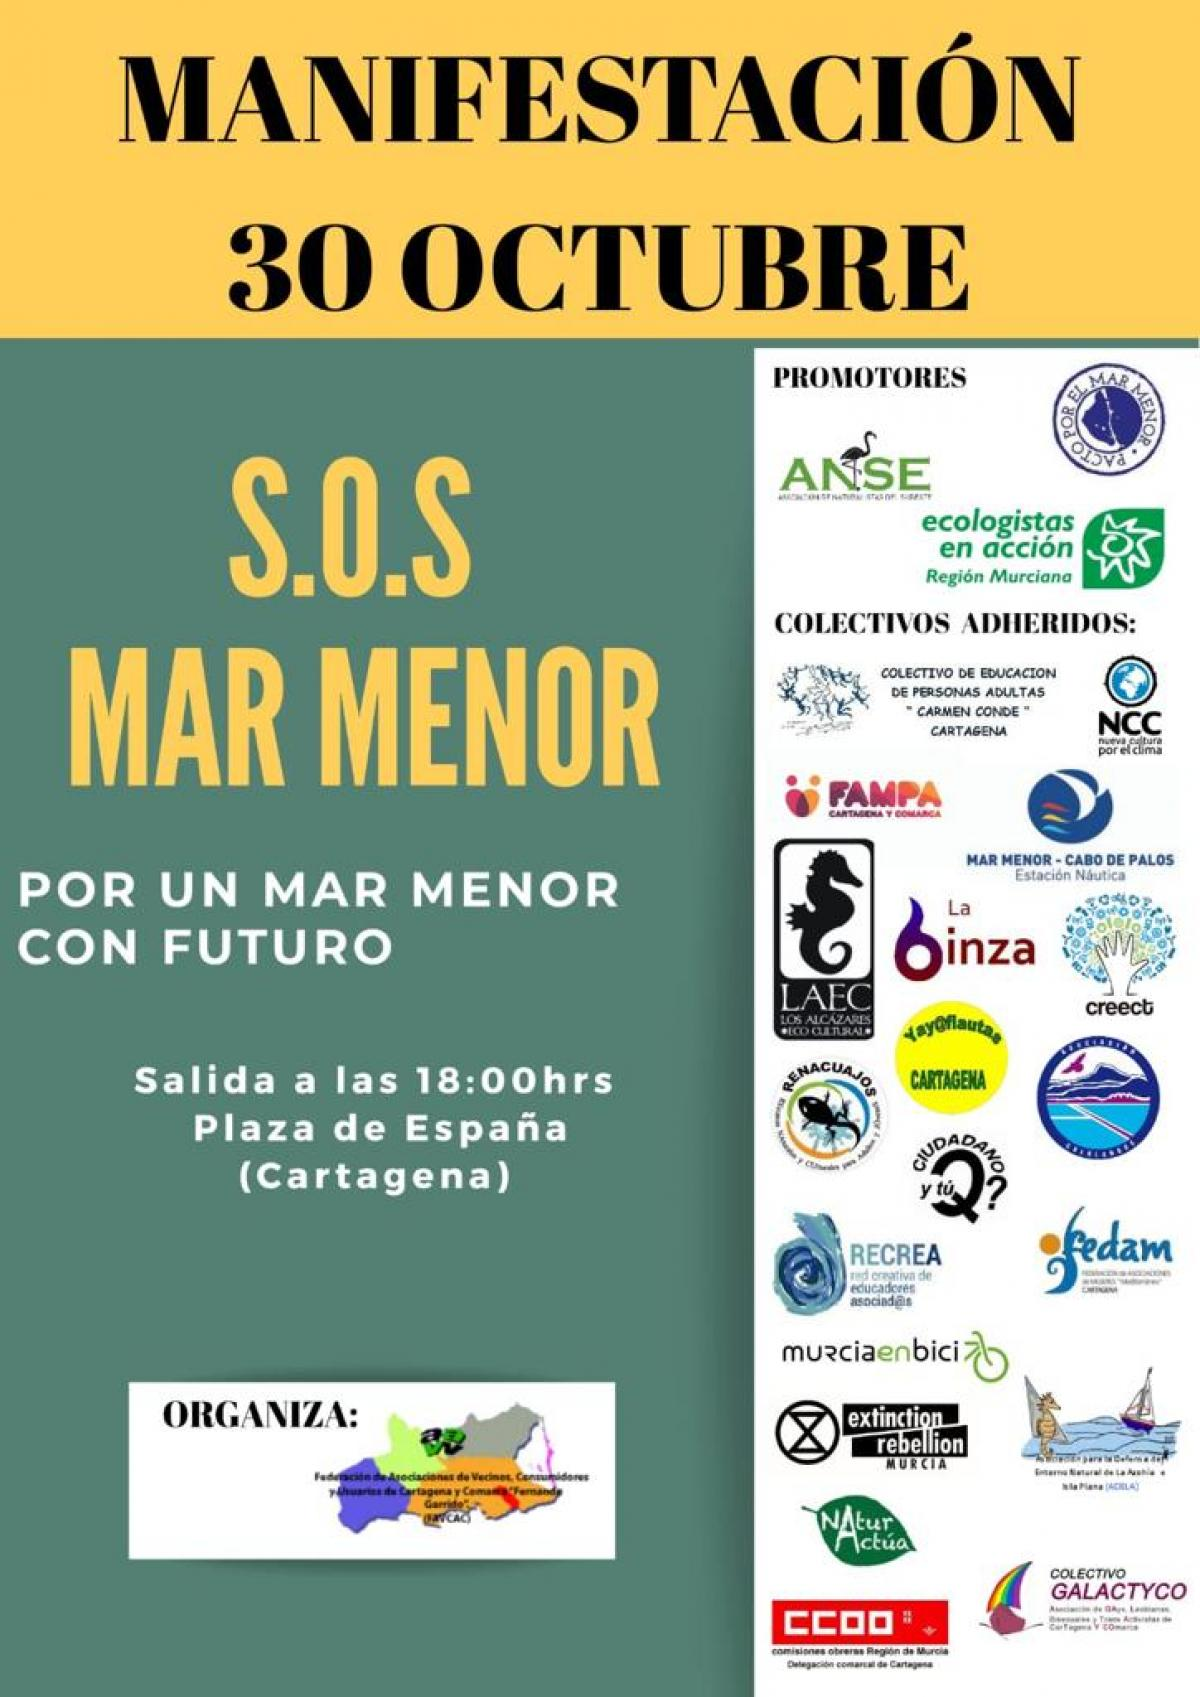 SOS MAR MENOR